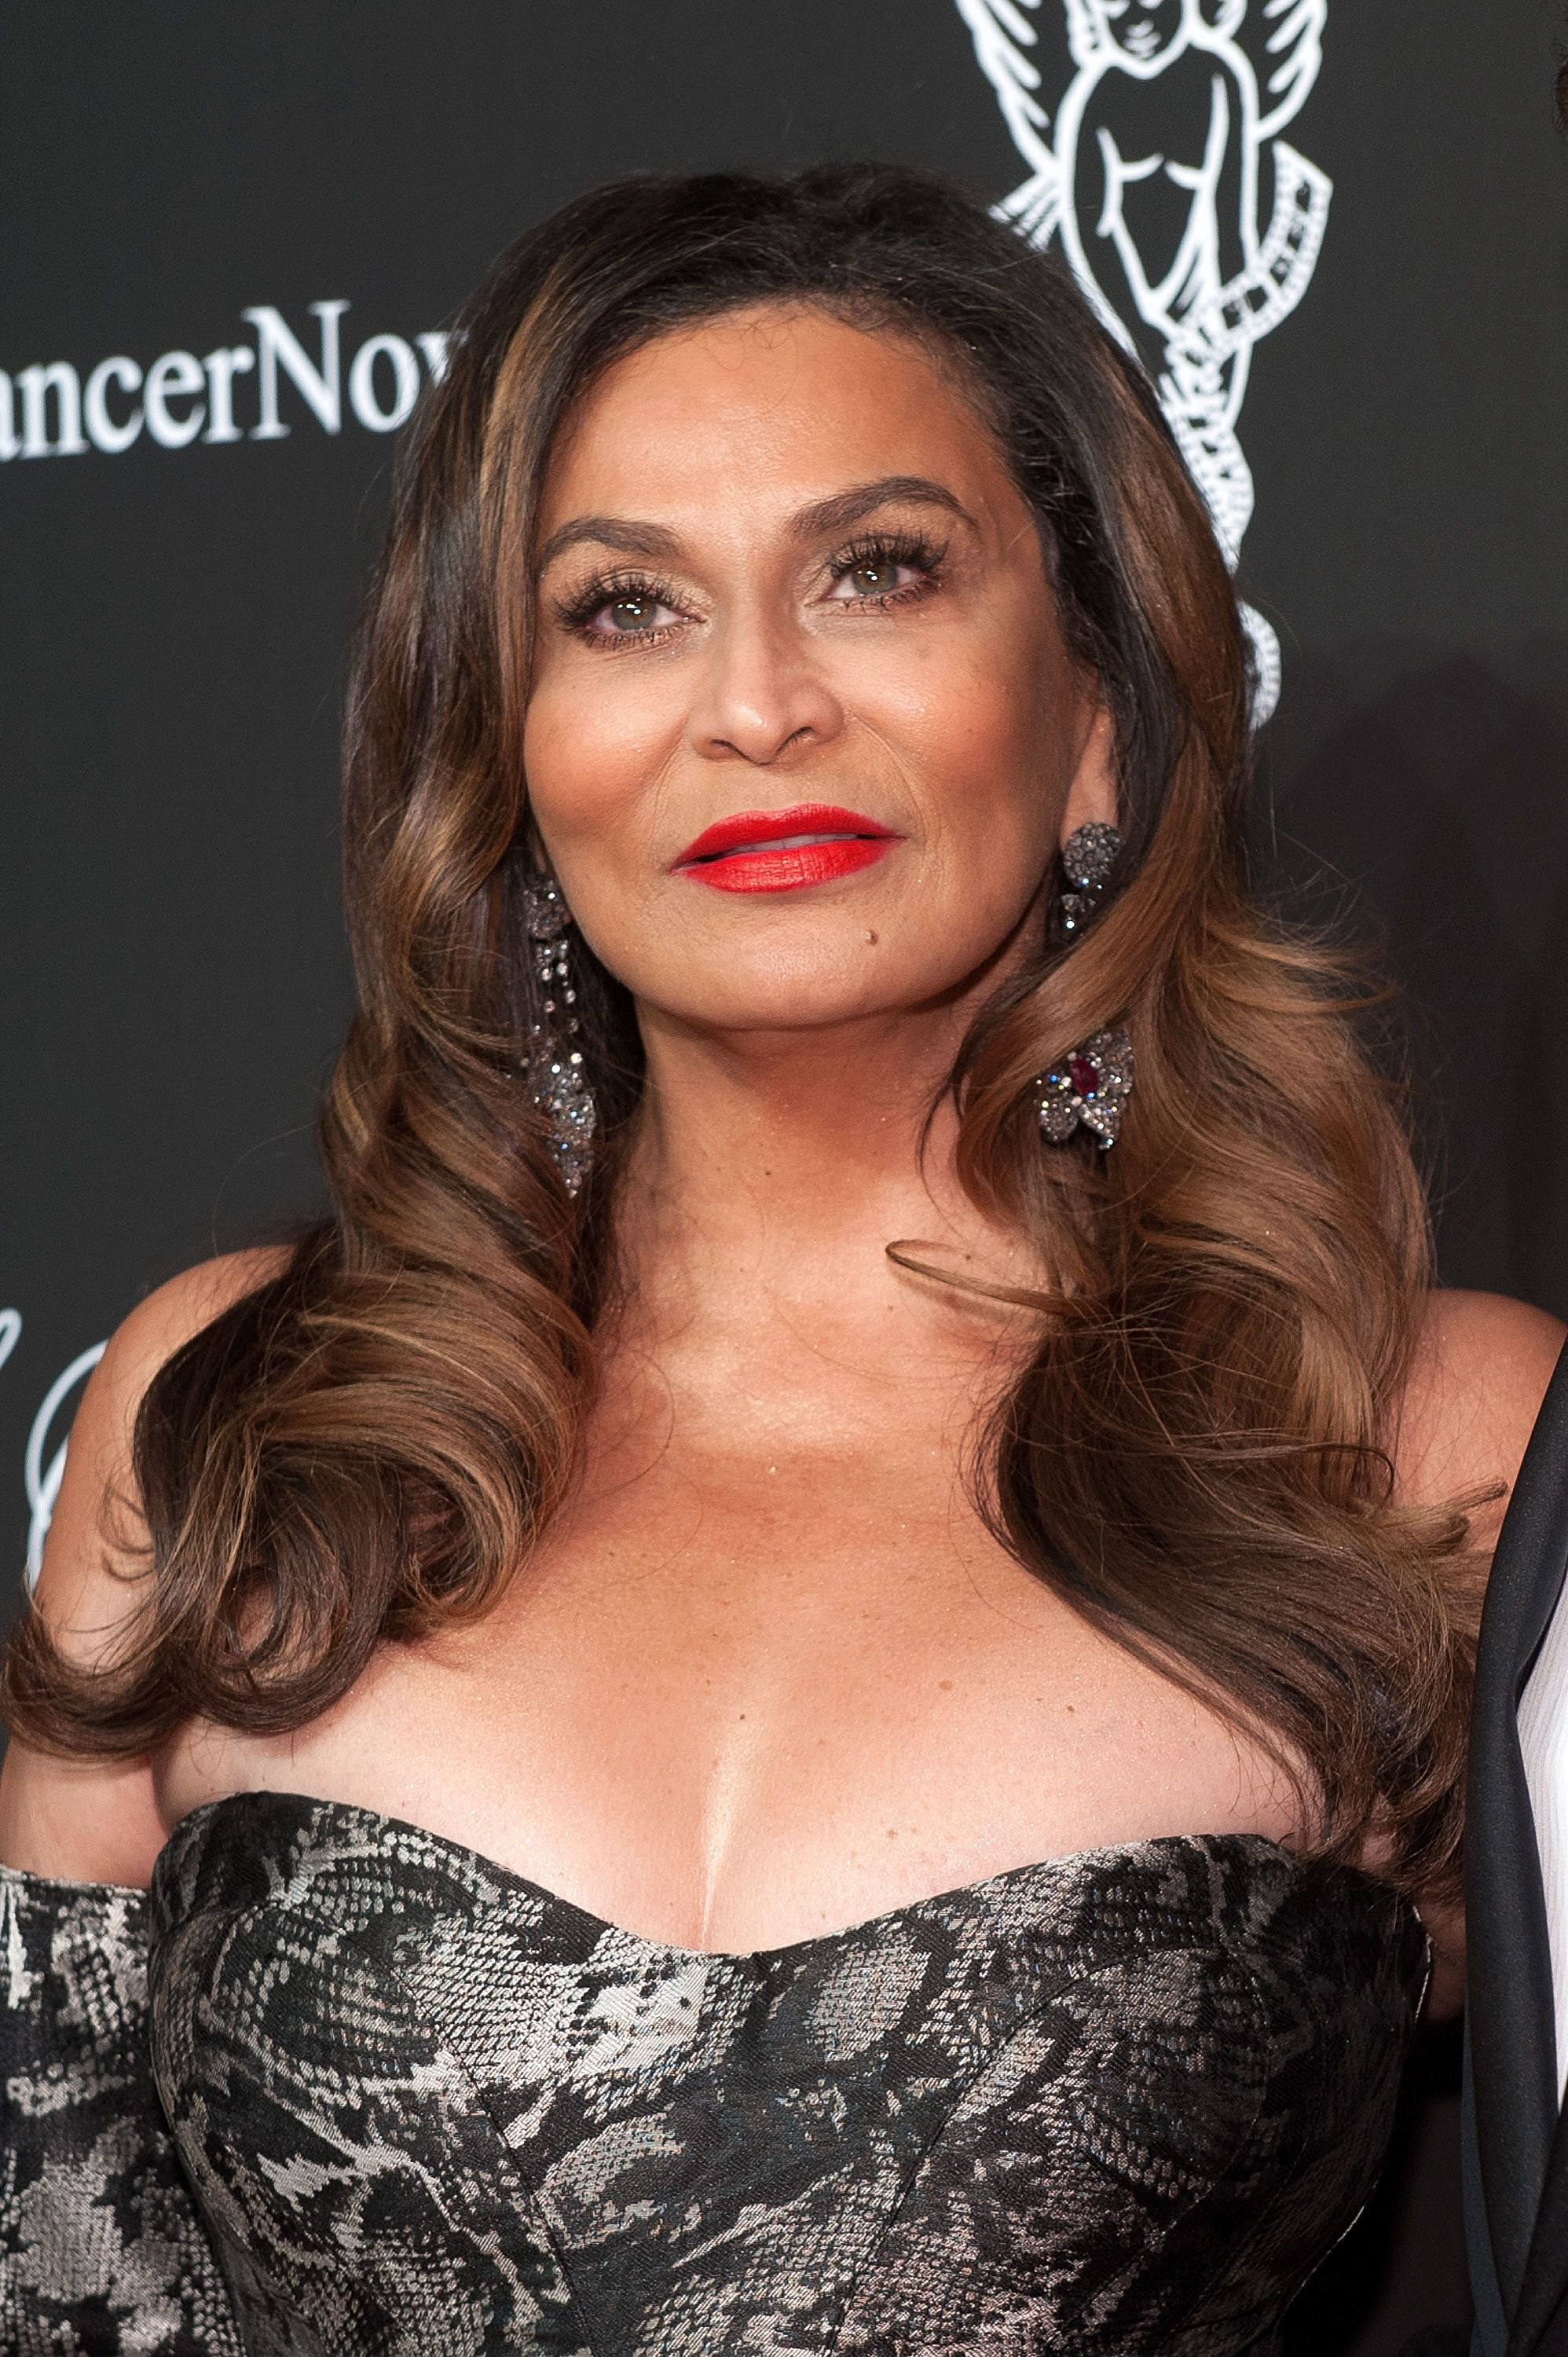 NEW YORK, NY - OCTOBER 20:  Tina Knowles attends the 2014 Angel Ball at Cipriani Wall Street on October 20, 2014 in New York City.  (Photo by D Dipasupil/FilmMagic)